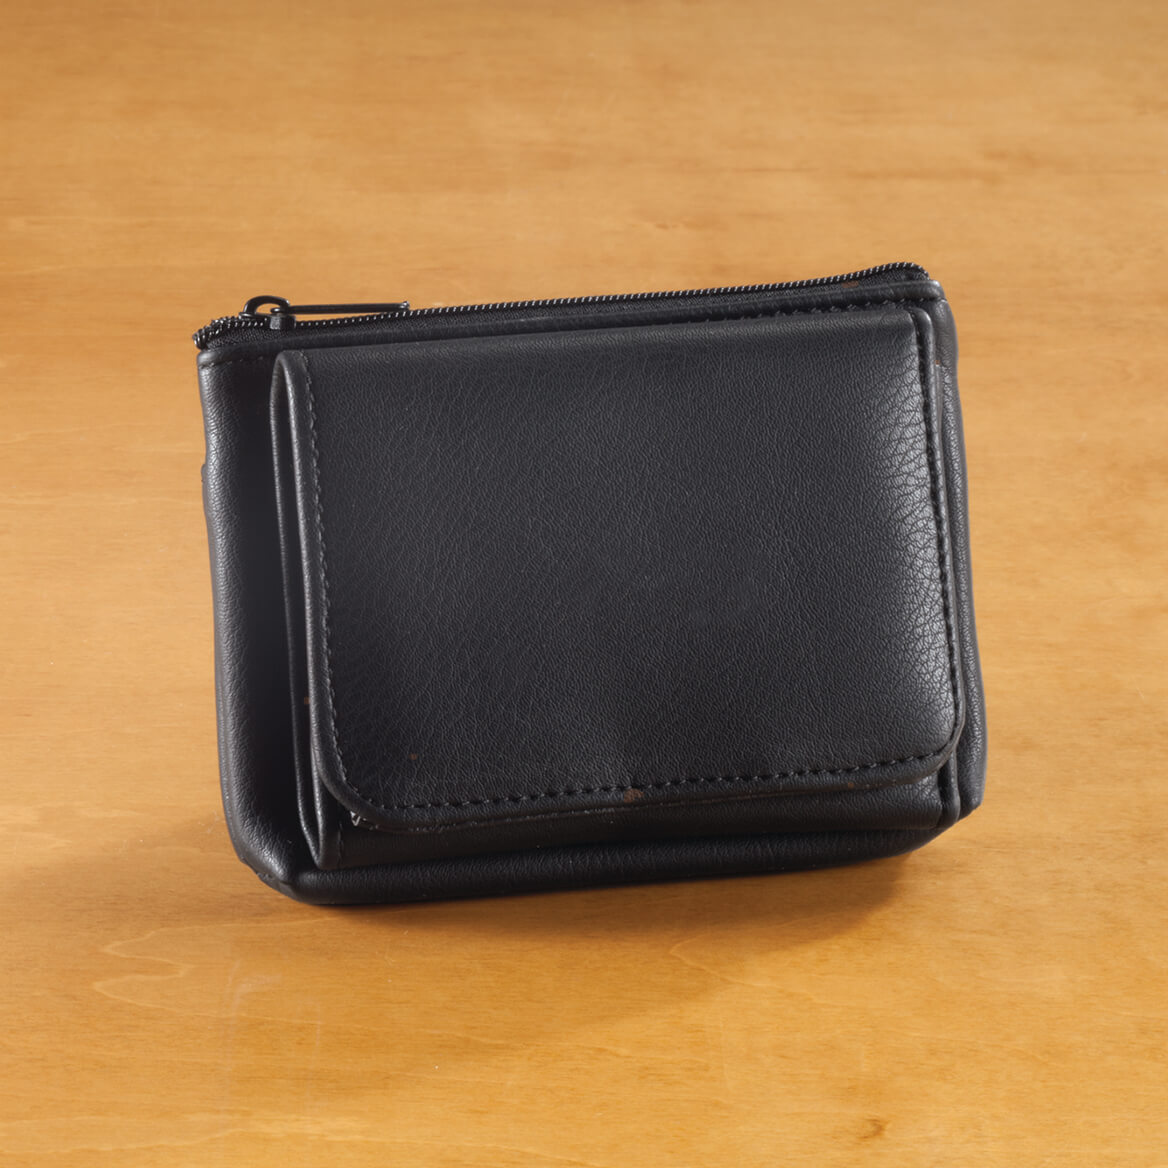 9ec31adf076d5 Personalized Leather Credit Card Holder - Miles Kimball